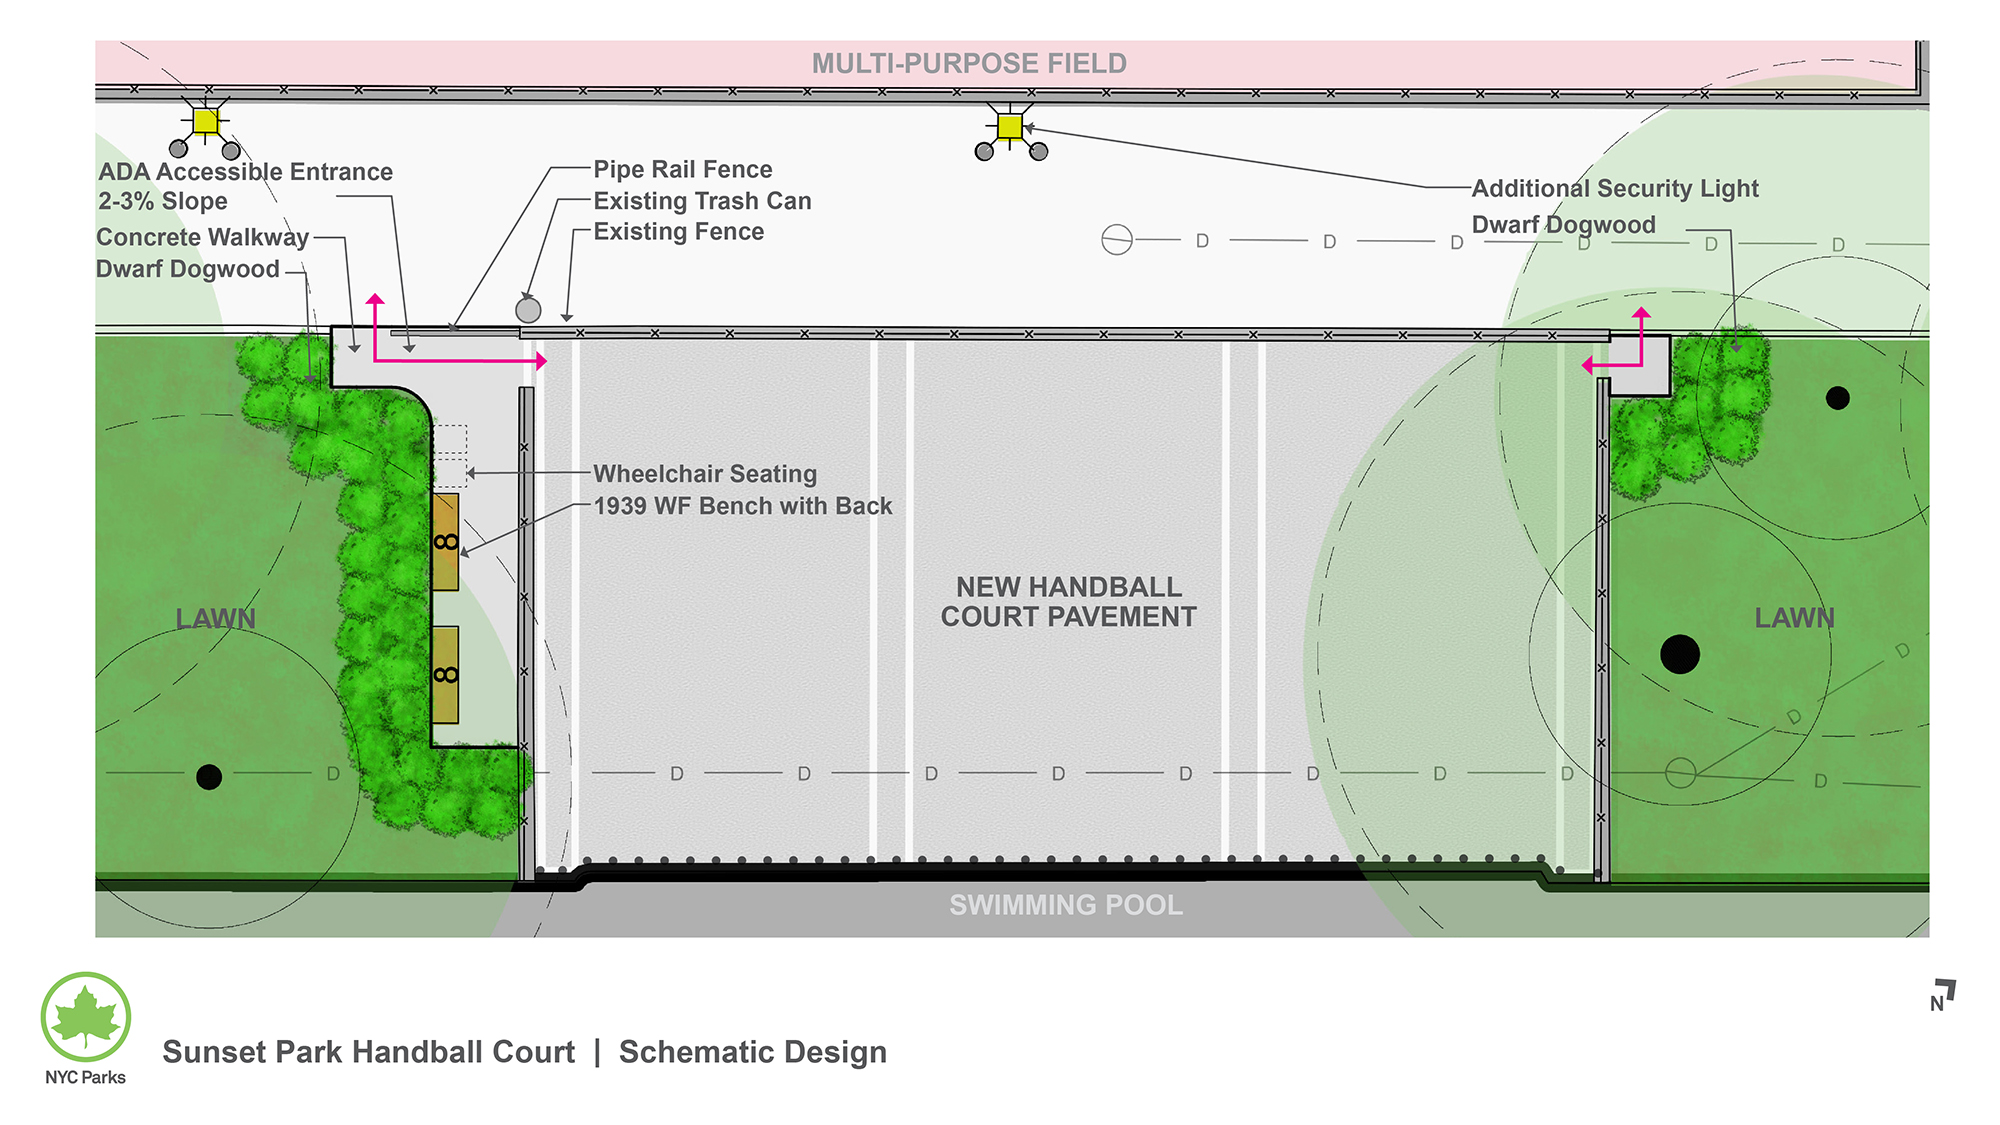 Design of Sunset Park Handball Court Reconstruction